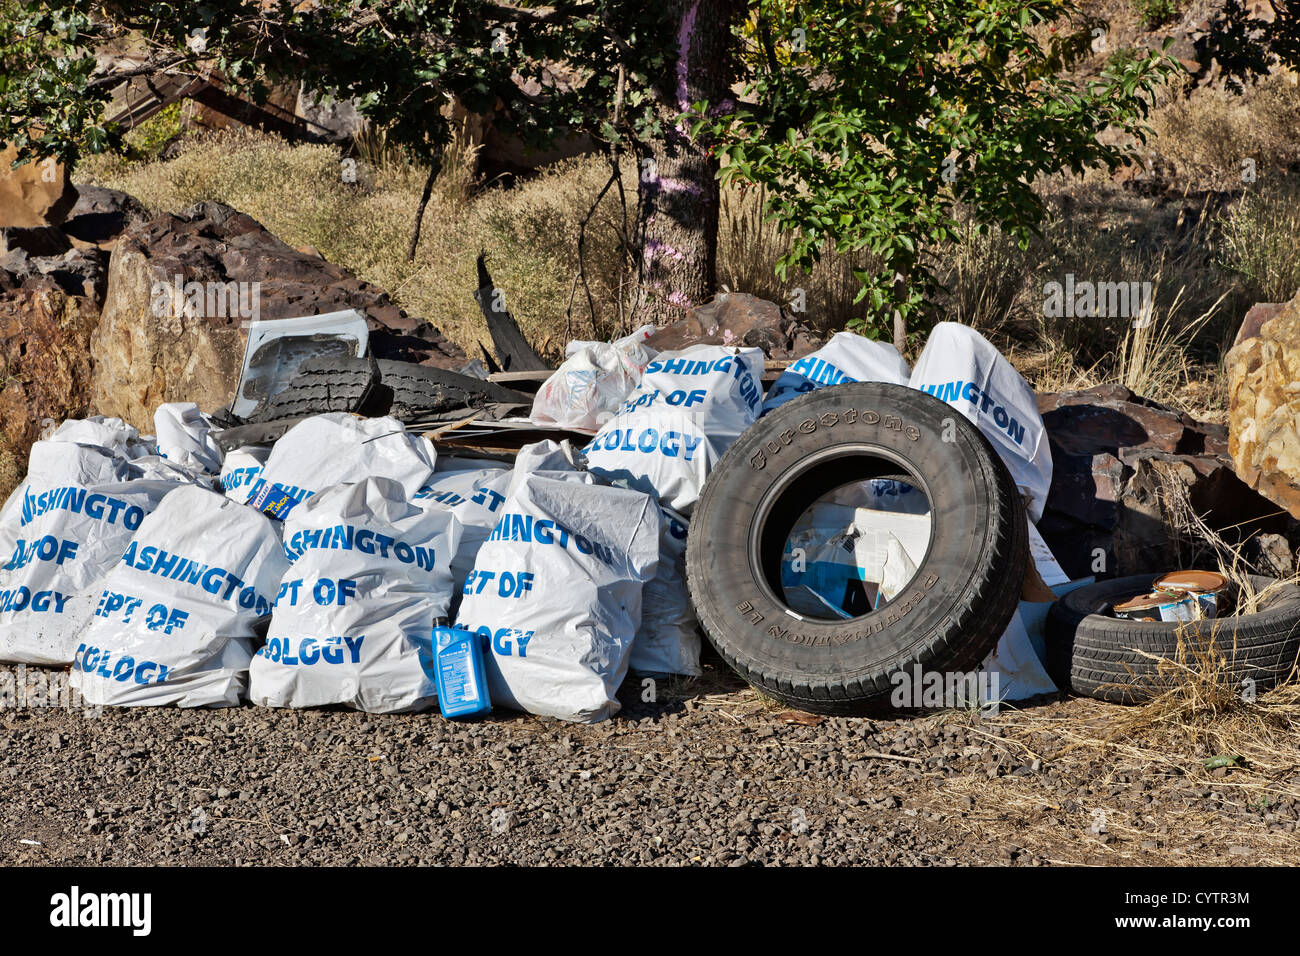 Trash collected along Washington State highway. - Stock Image